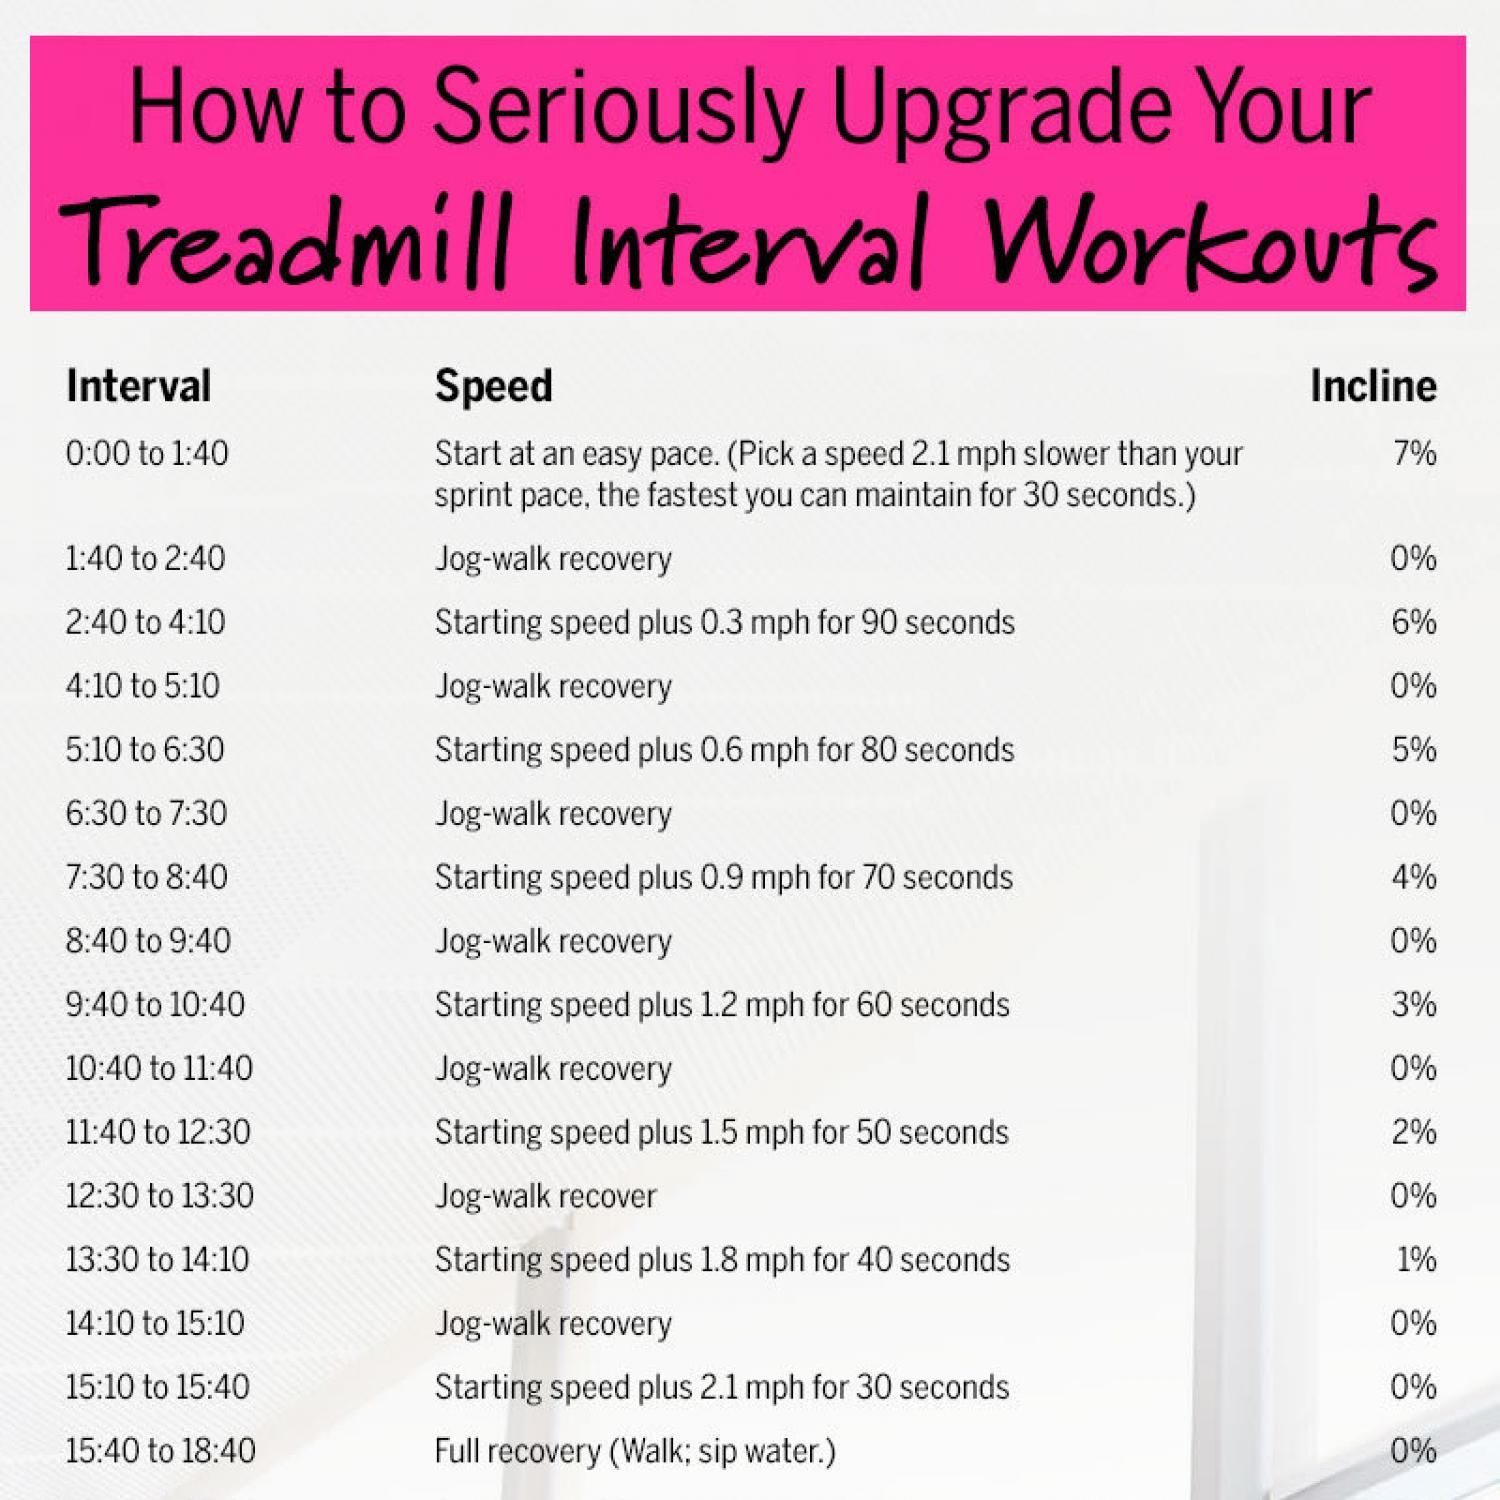 Treadmill Interval Workouts: How To Seriously Upgrade Your Treadmill Interval Workouts